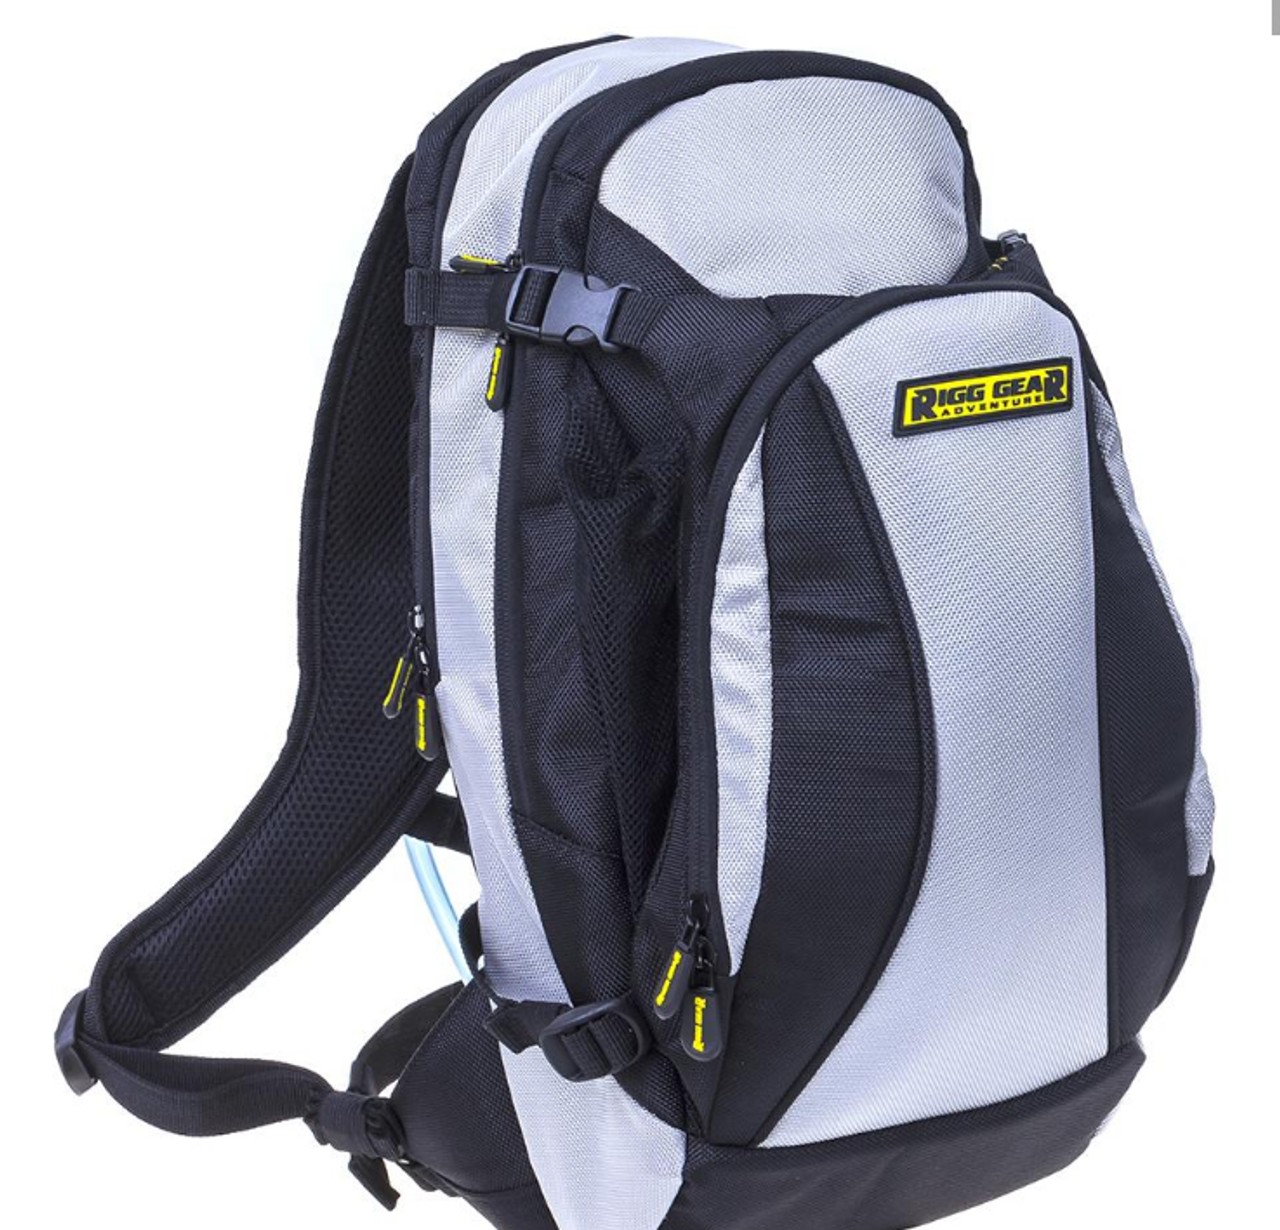 5a8b4e0825 Nelson-Rigg+Backpack+RG-045+Adventure+water+hydration+black